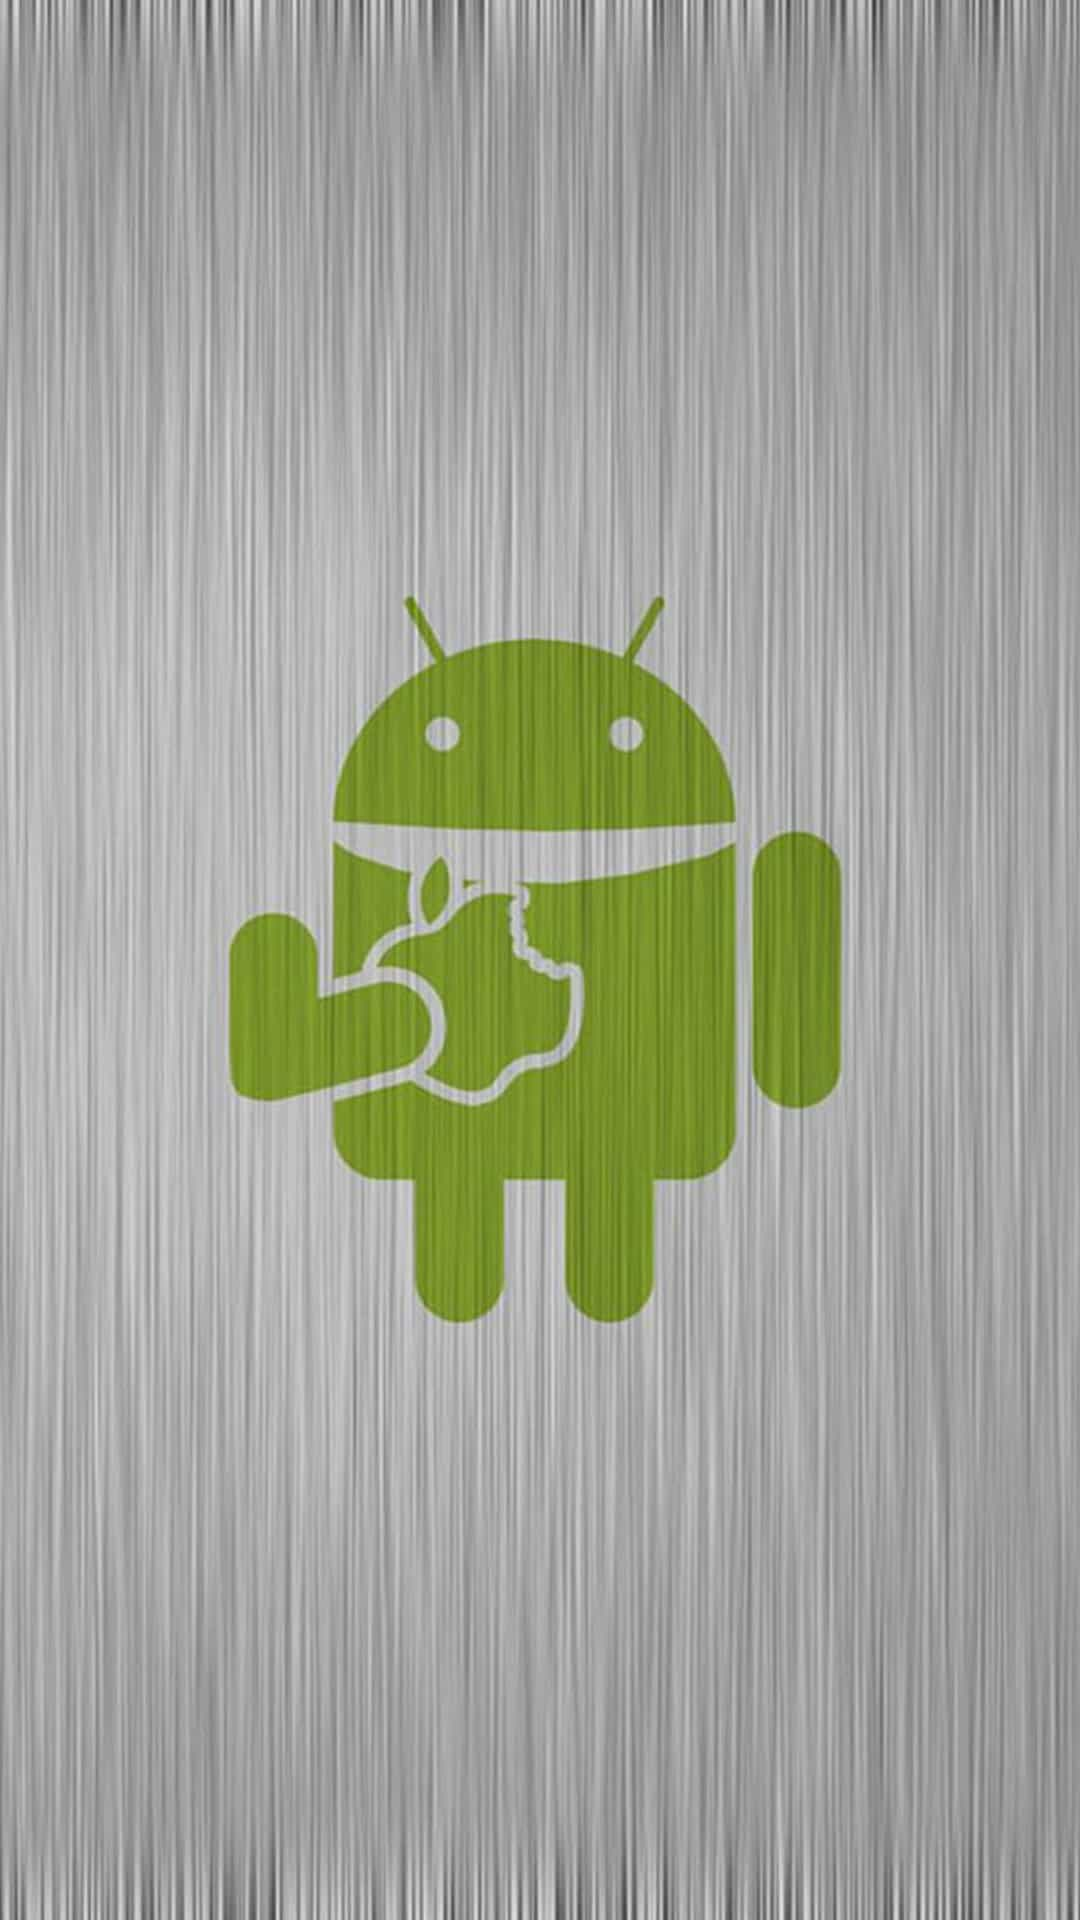 android-robot-eating-apple-logo-android-wallpaper